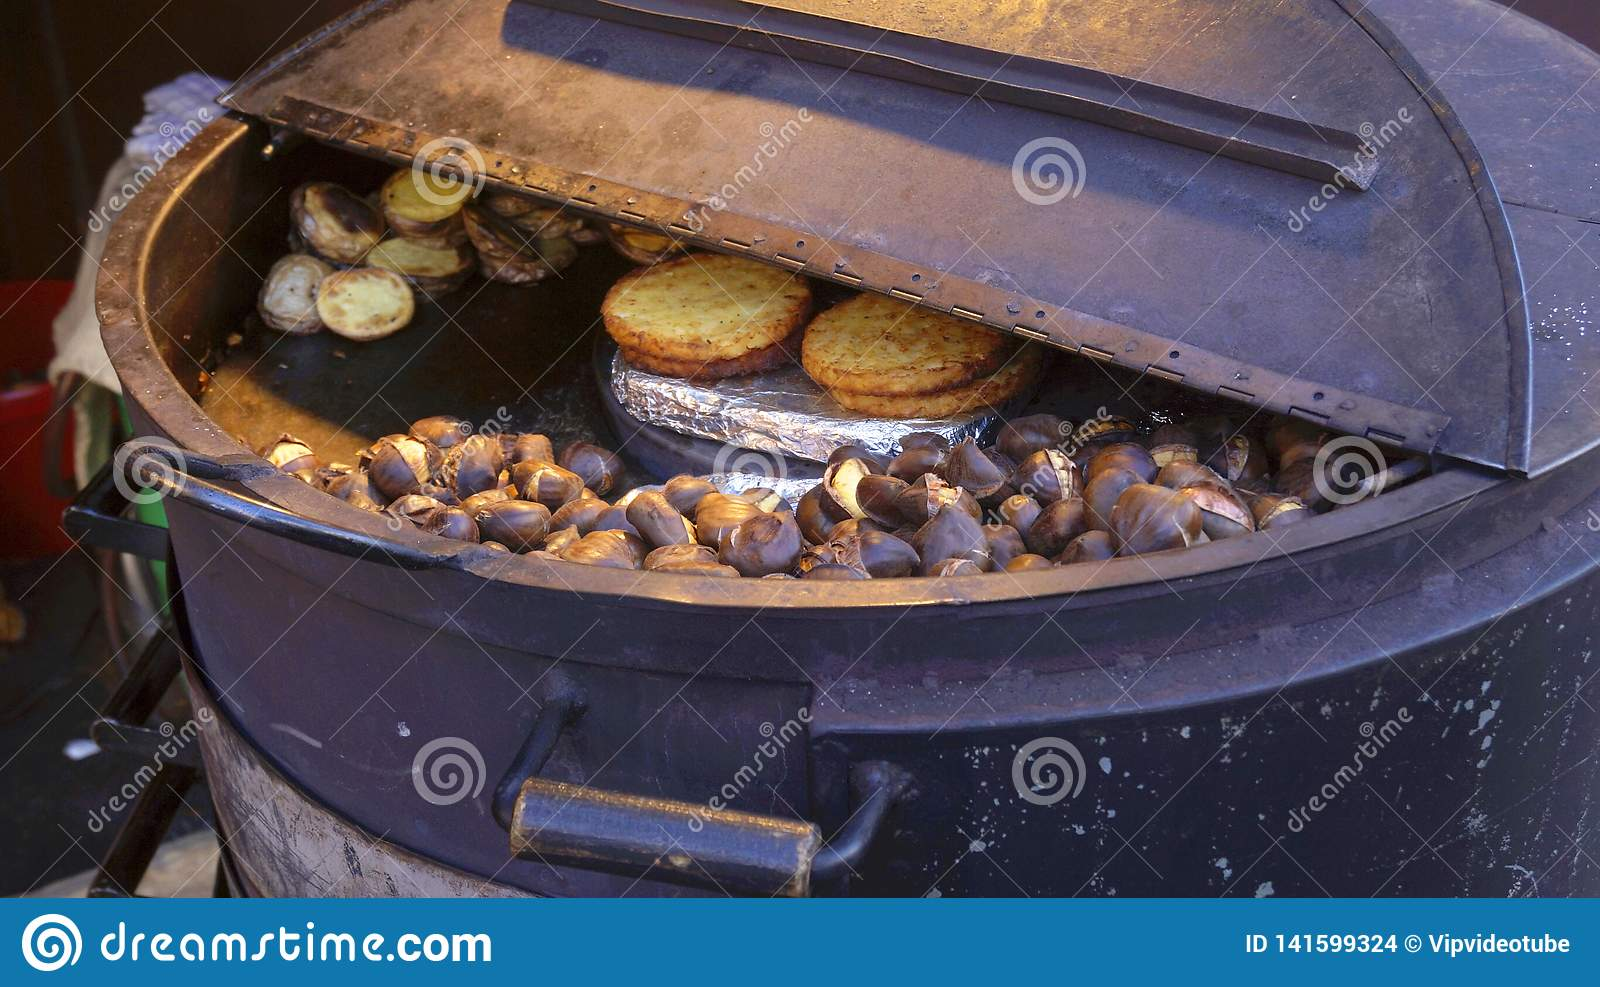 Roasted chestnuts are cooked in an iron barrel